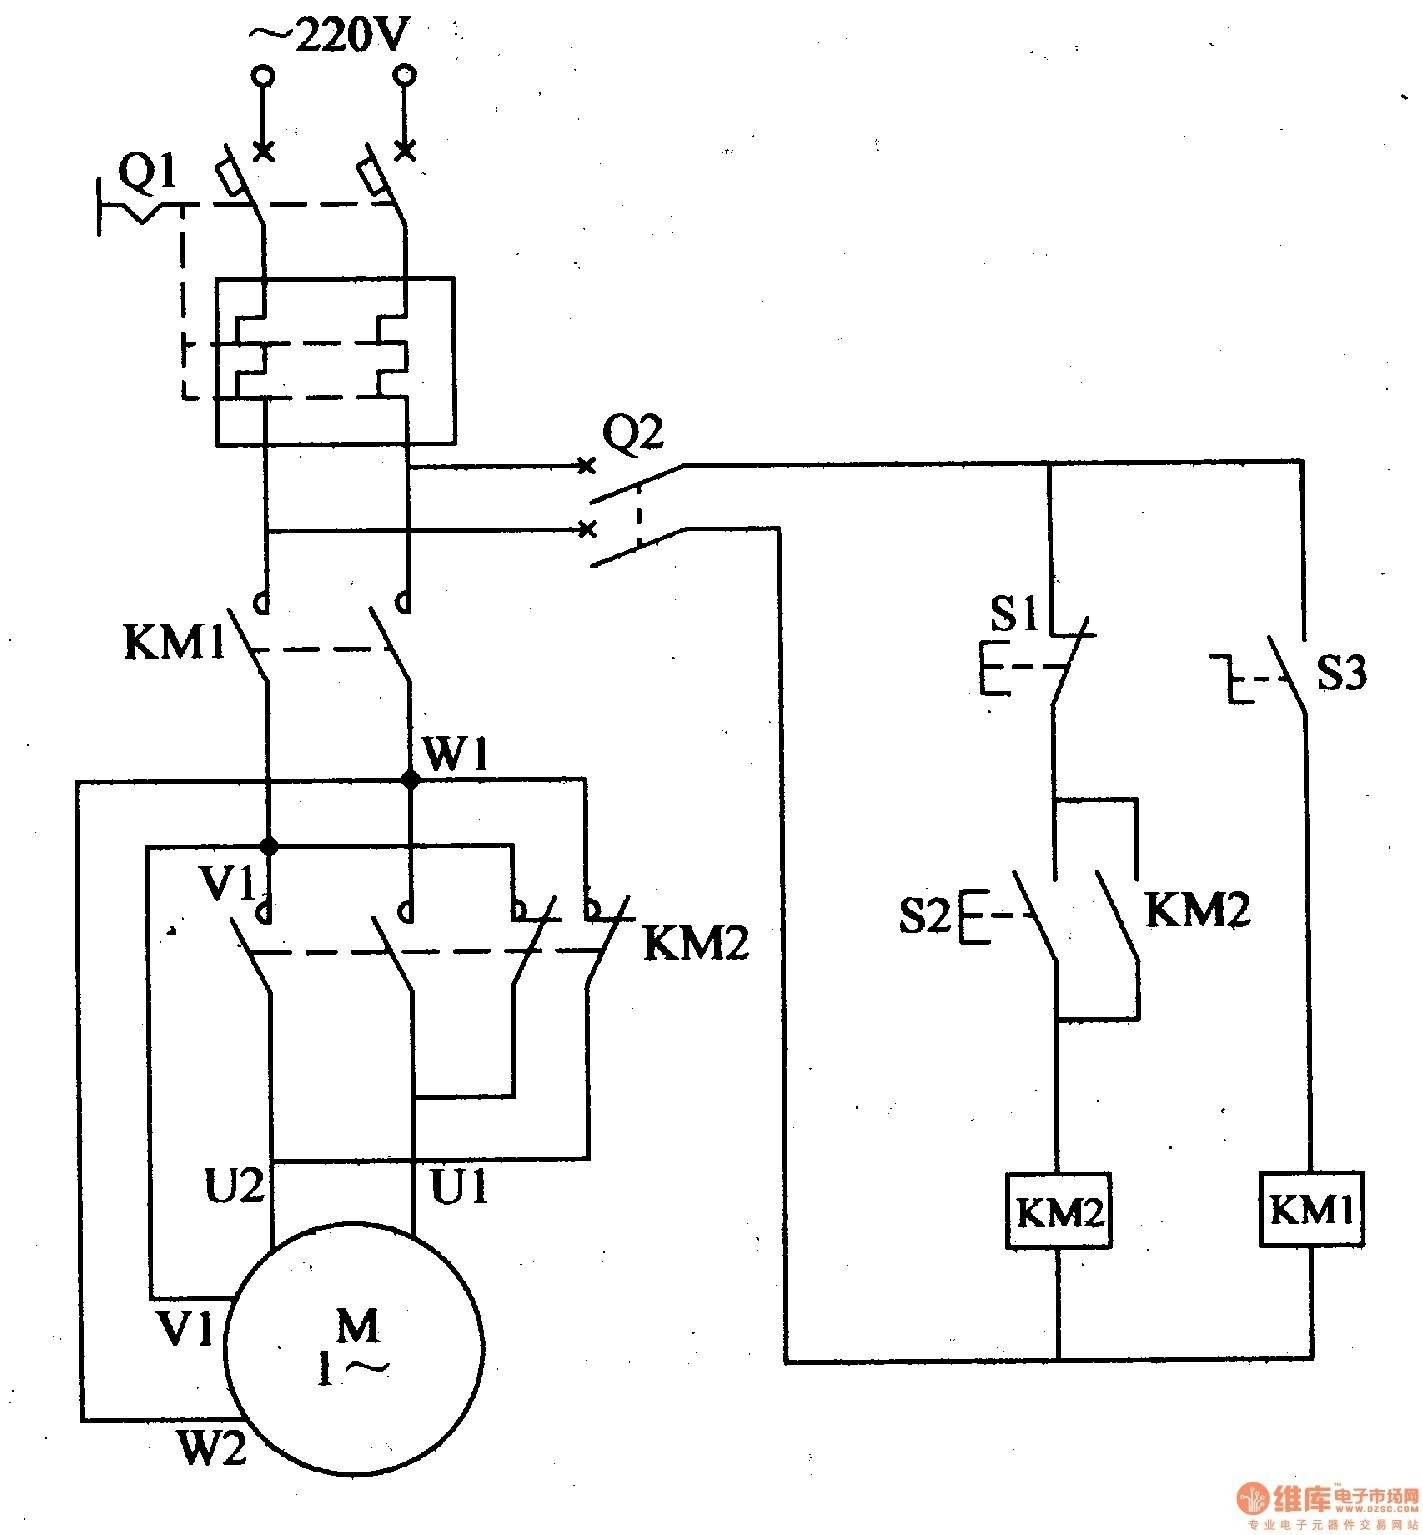 basic electrical schematic diagrams, 3 phase single line diagram, 3 phase motor starter, 3 phase water heater wiring diagram, 3 phase electrical meters, 3 phase motor schematic, baldor ac motor diagrams, three-phase transformer banks diagrams, 3 phase plug, 3 phase motor troubleshooting guide, 3 phase motor repair, 3 phase subpanel, 3 phase to 1 phase wiring diagram, 3 phase to single phase wiring diagram, 3 phase motor windings, 3 phase stepper, 3 phase squirrel cage induction motor, 3 phase outlet wiring diagram, 3 phase motor speed controller, 3 phase motor testing, on nema 3 phase motor wiring diagram